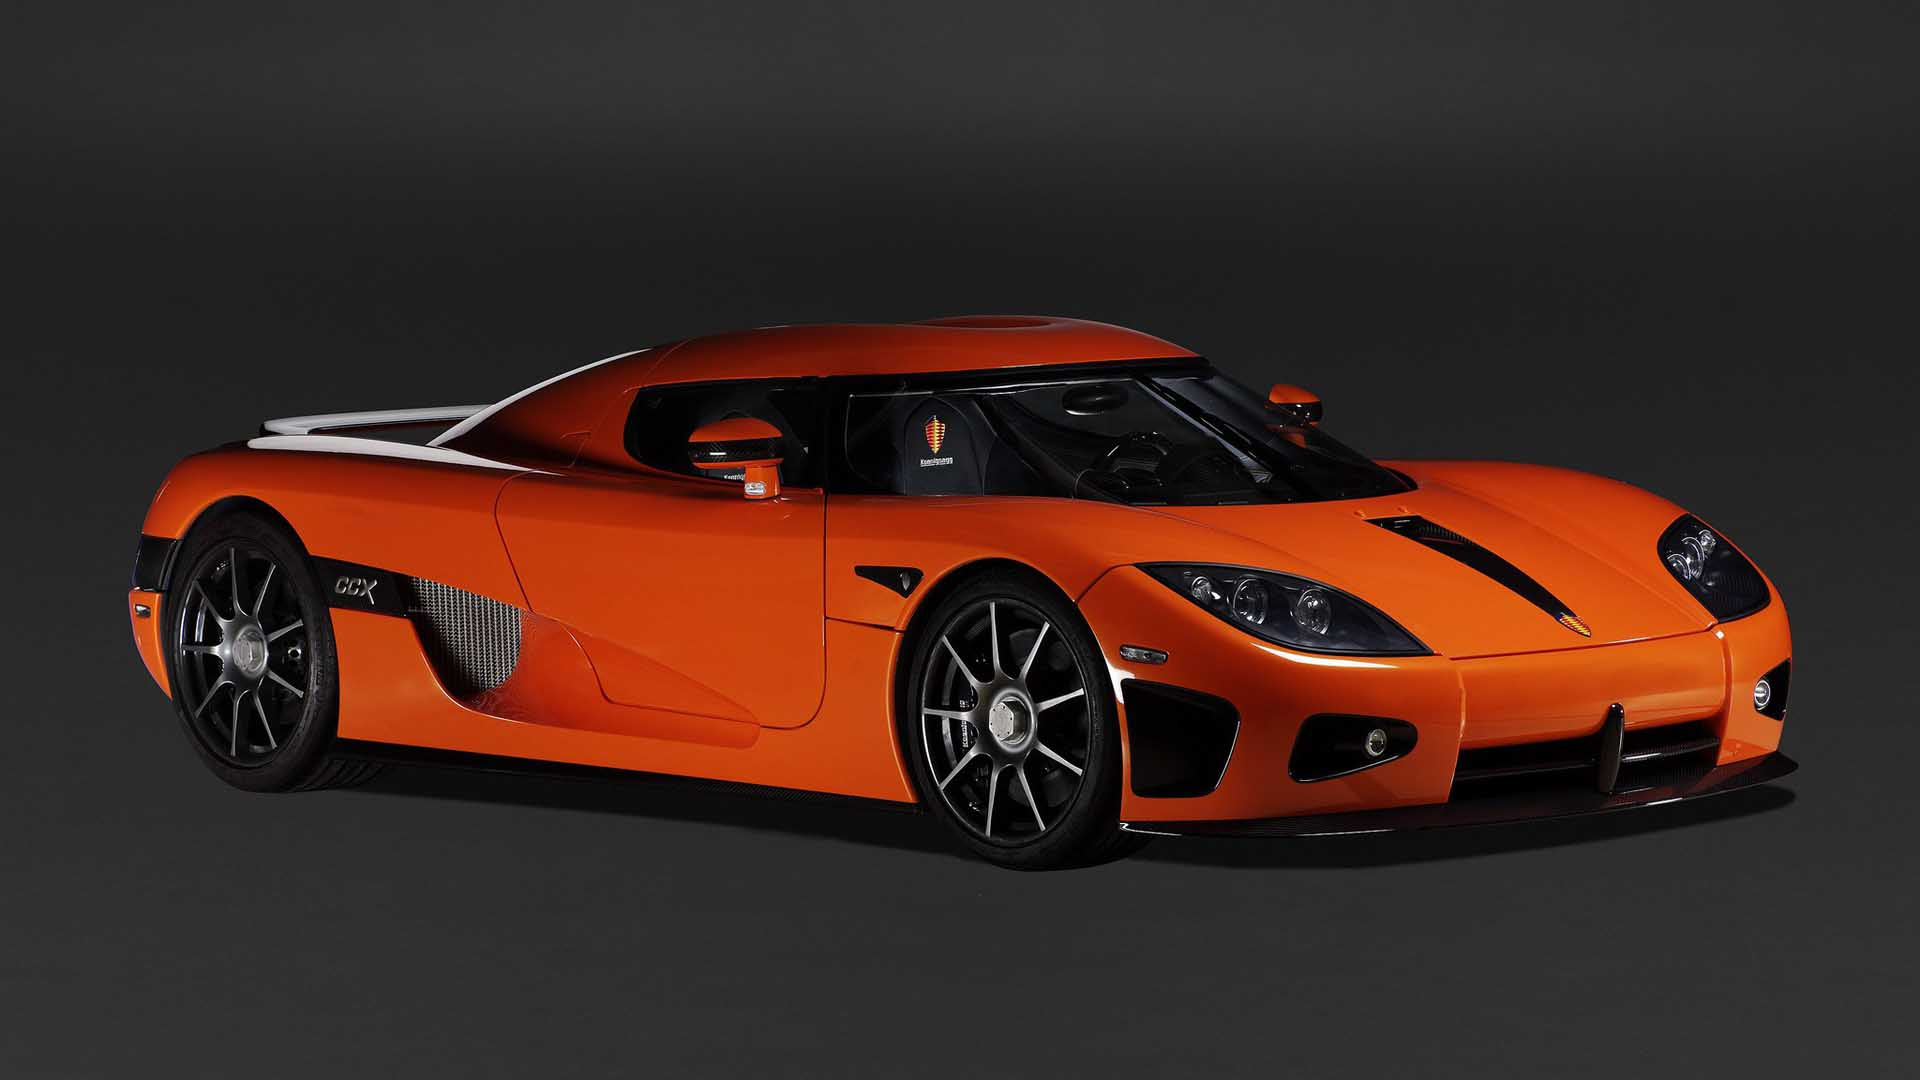 Koenigsegg Ccx wallpaper   603400 1920x1080